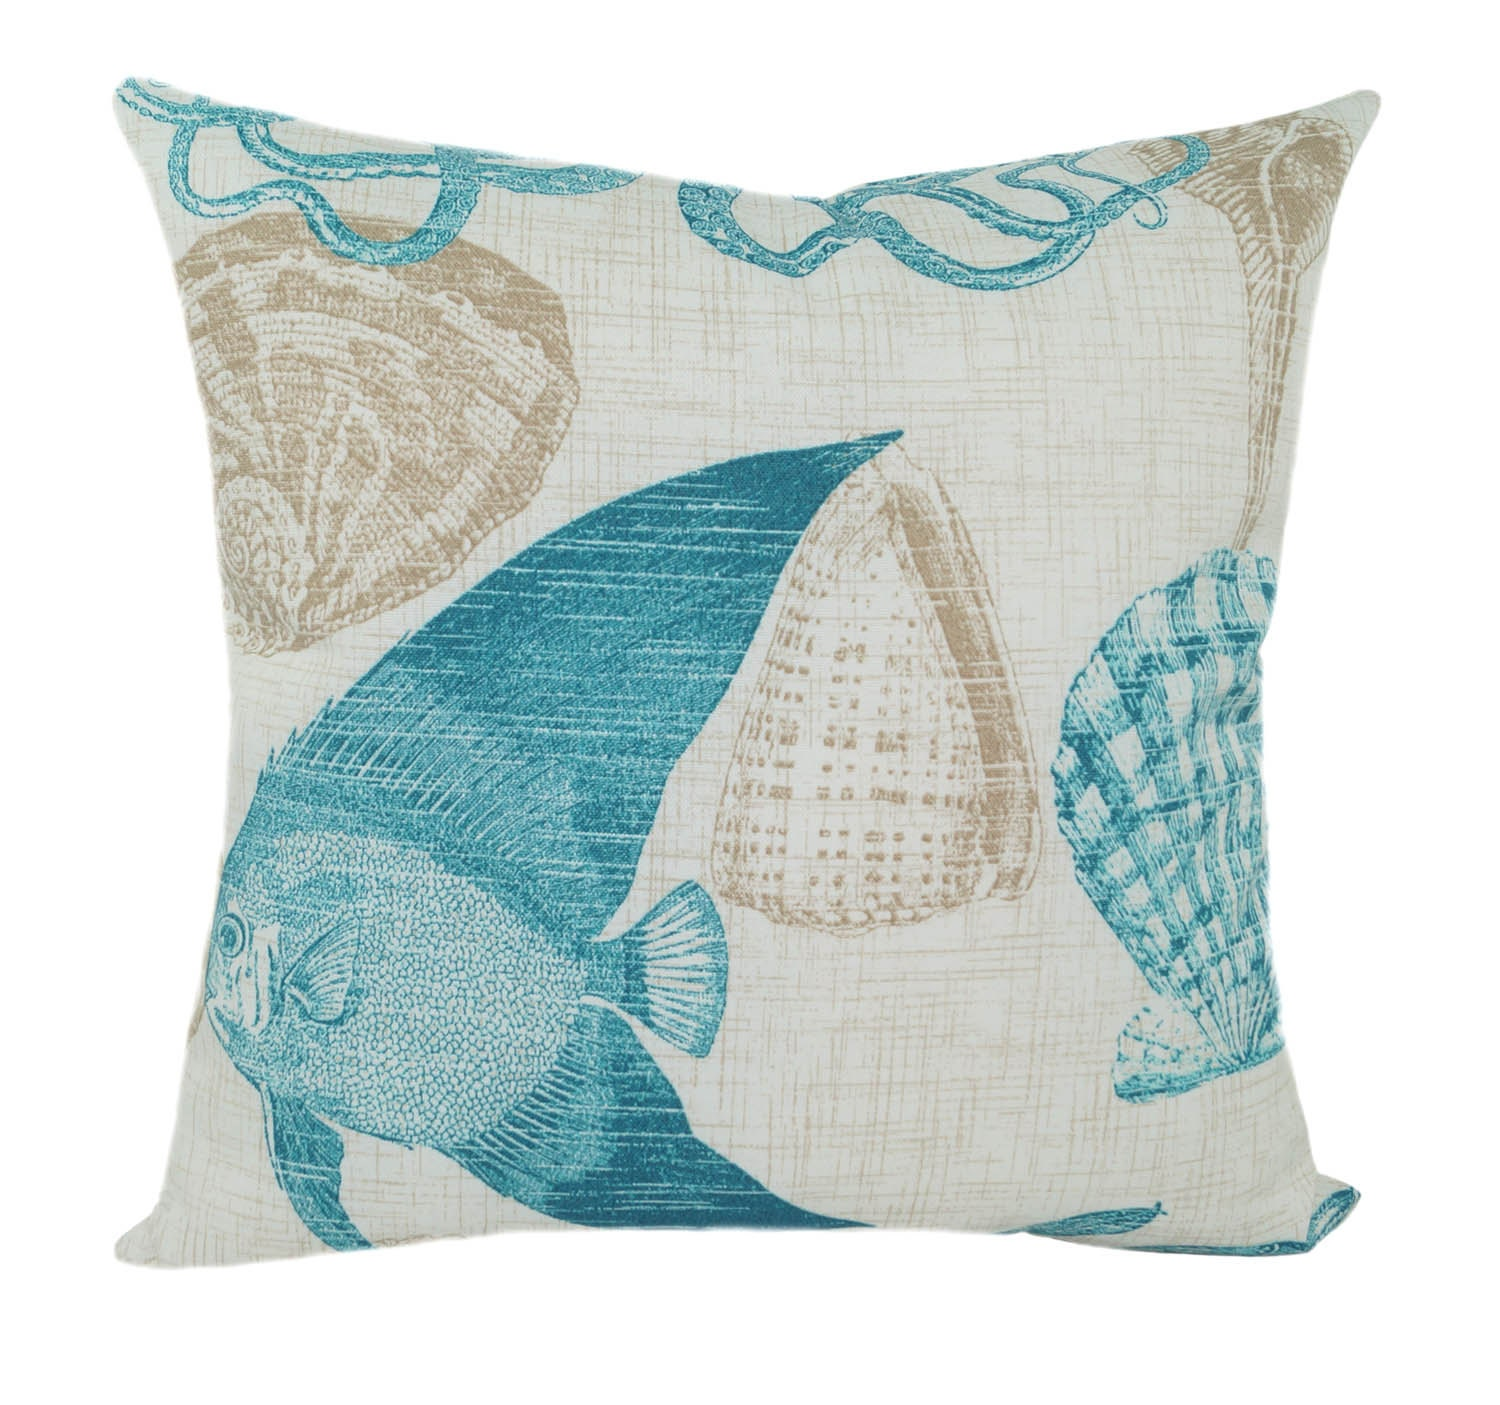 SALE Richloom Sea Life Nautical Outdoor Throw Pillow in